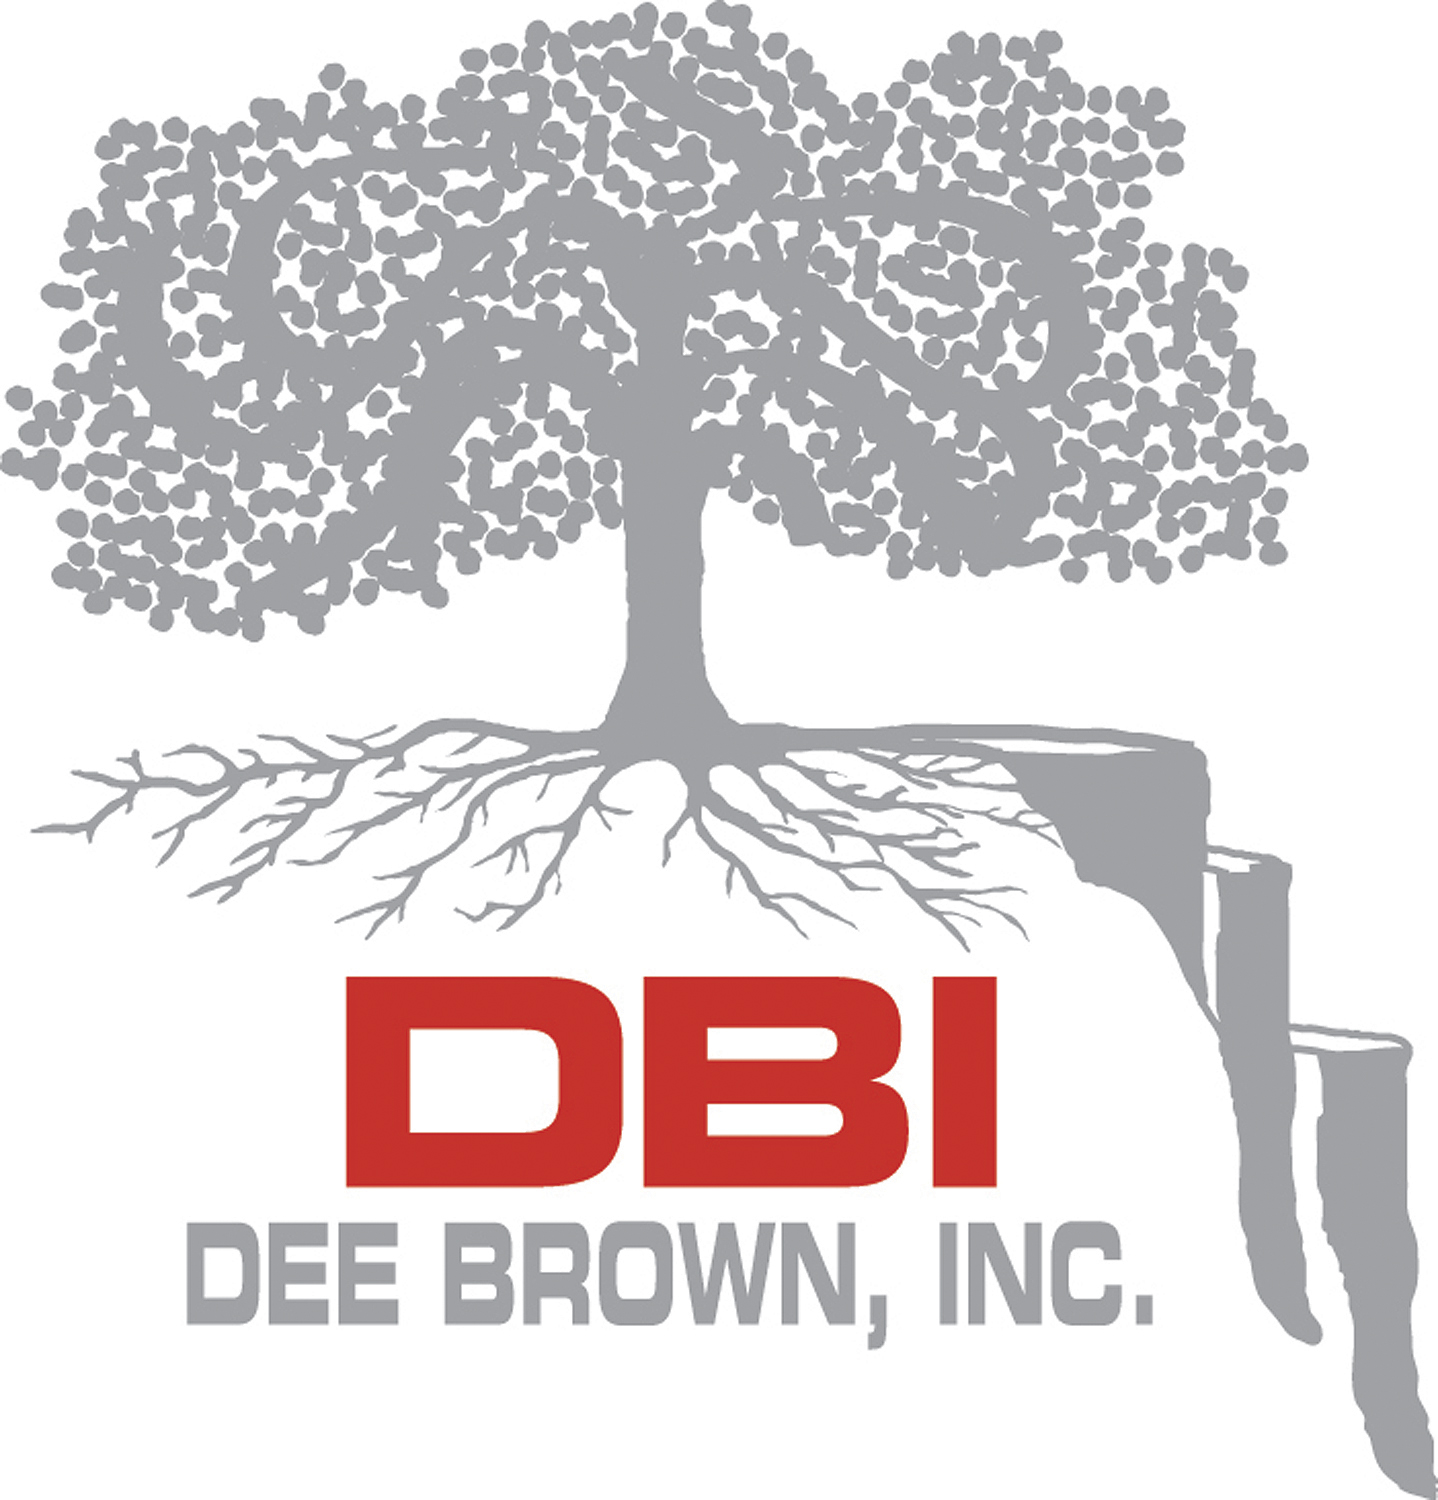 2020 Home Tour - Dee Brown logo